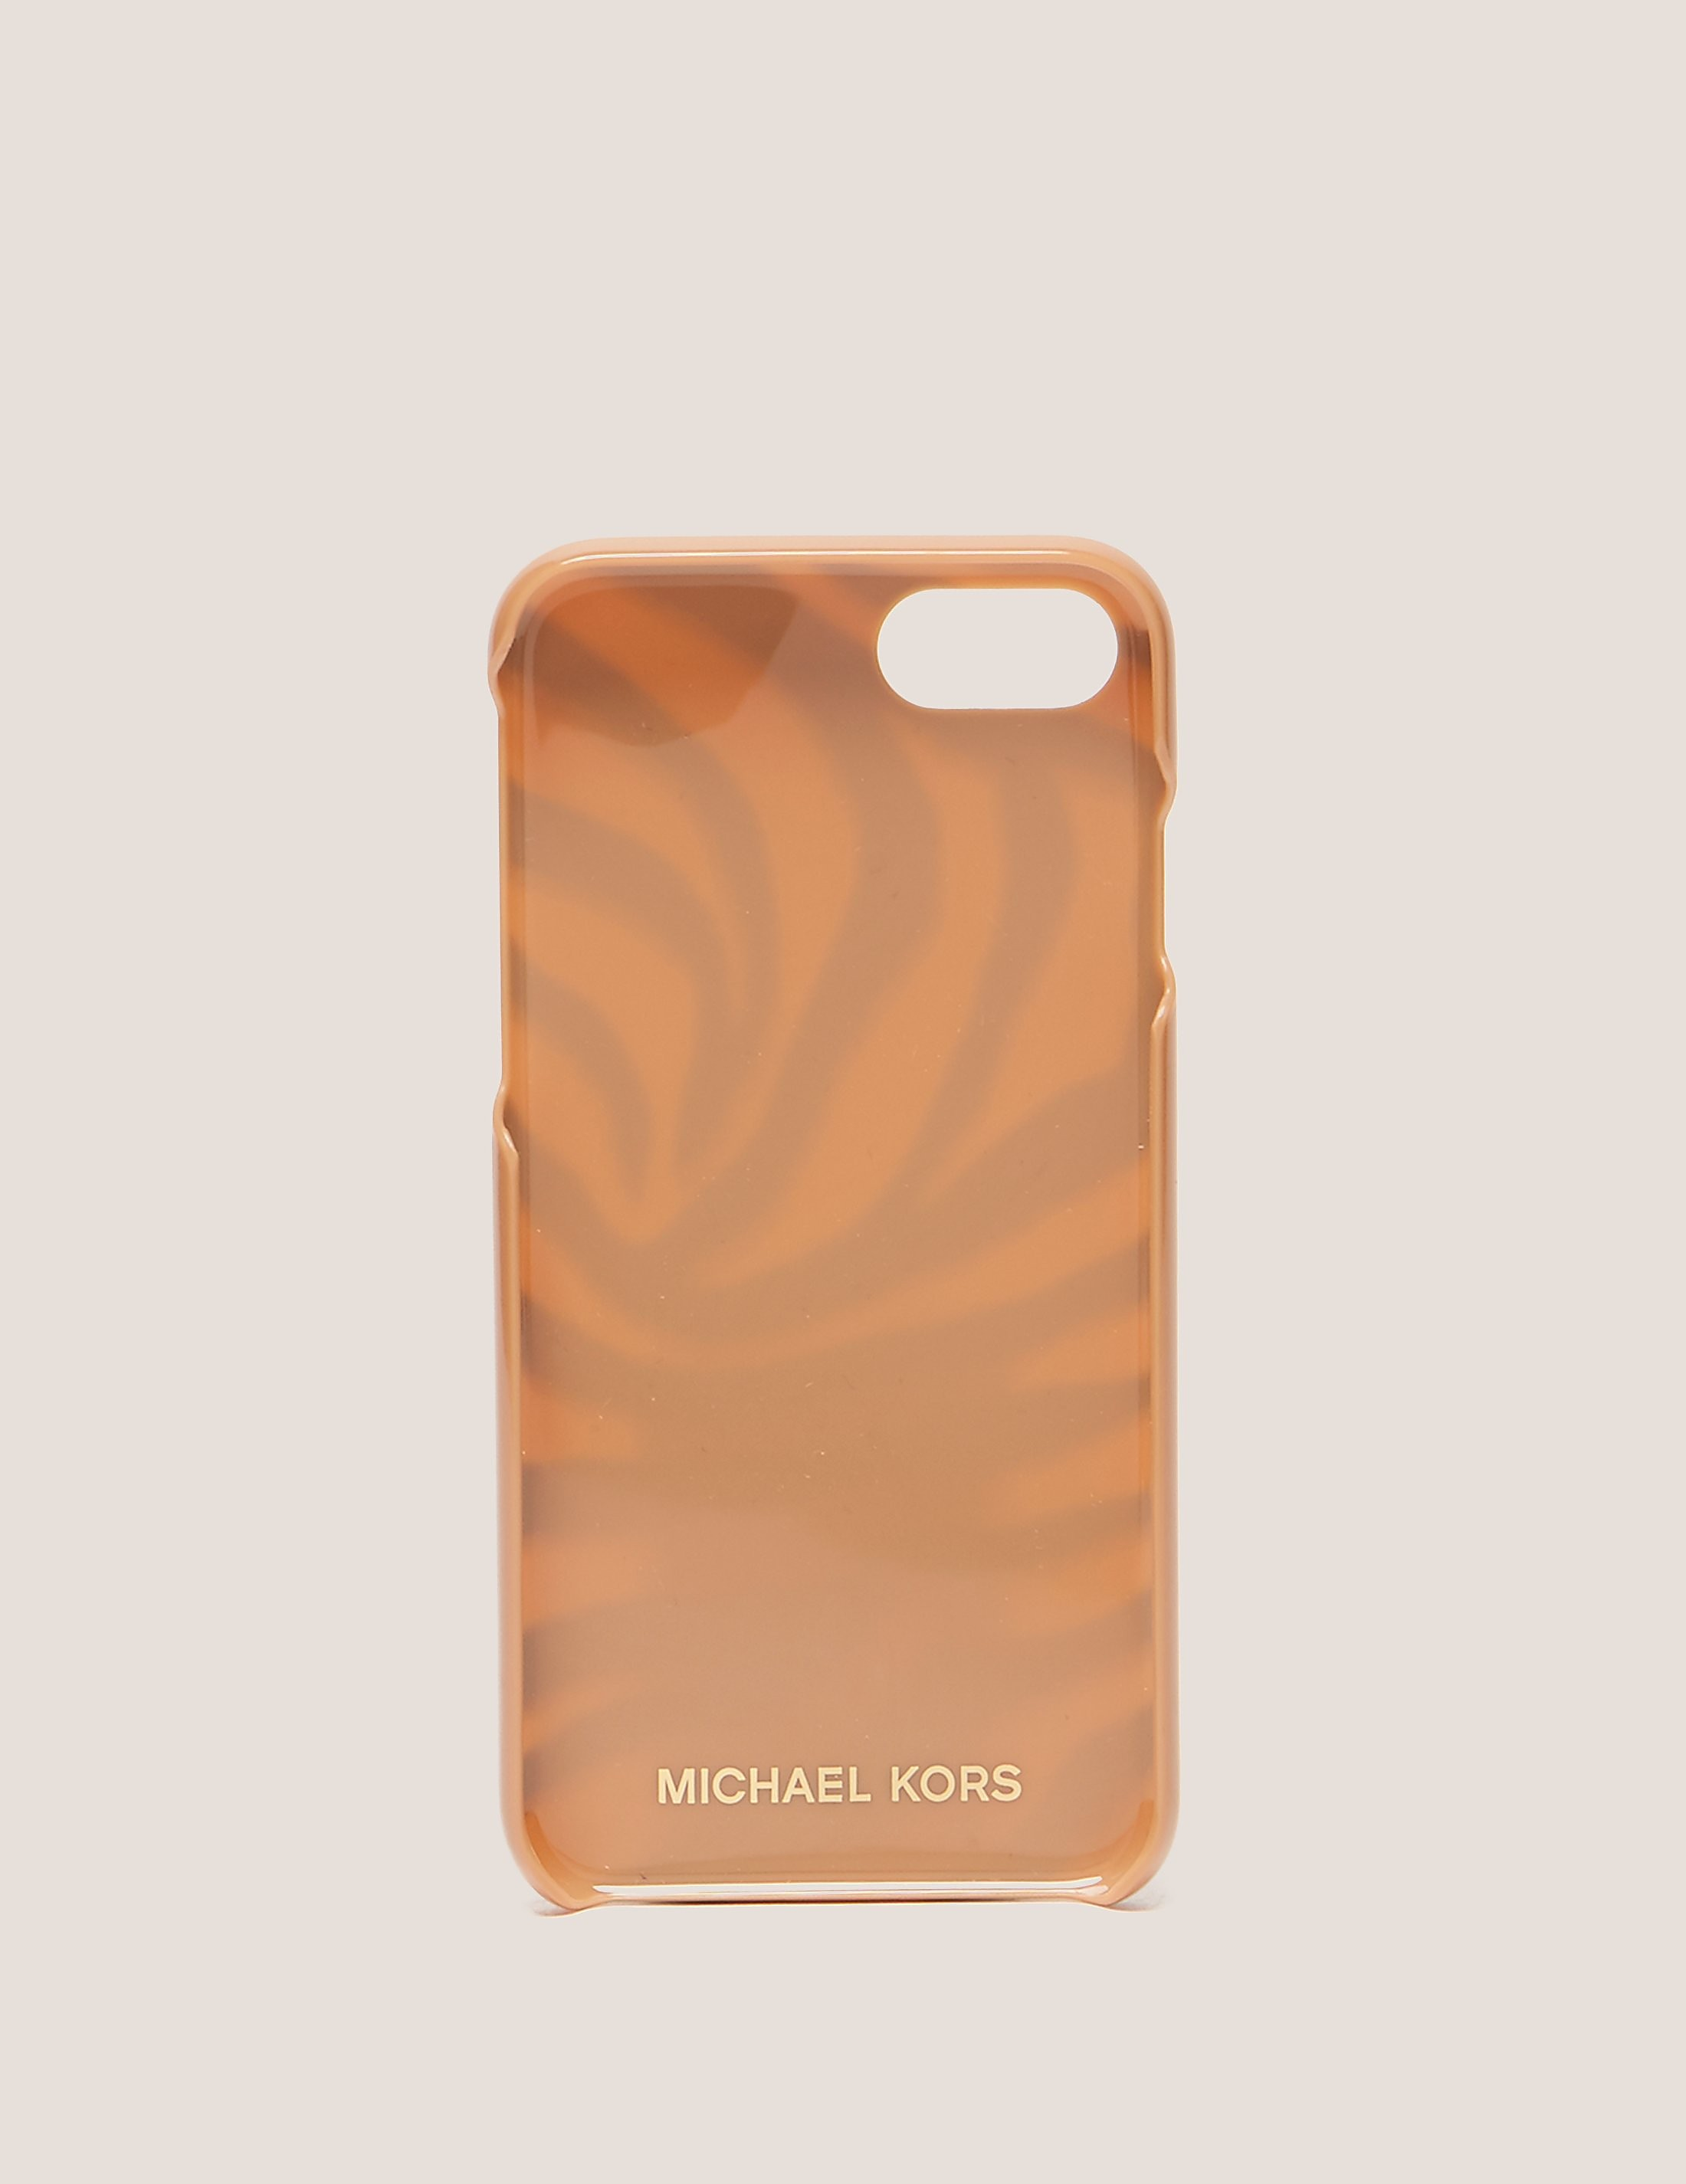 Michael Kors Zebra iPhone 6 Case